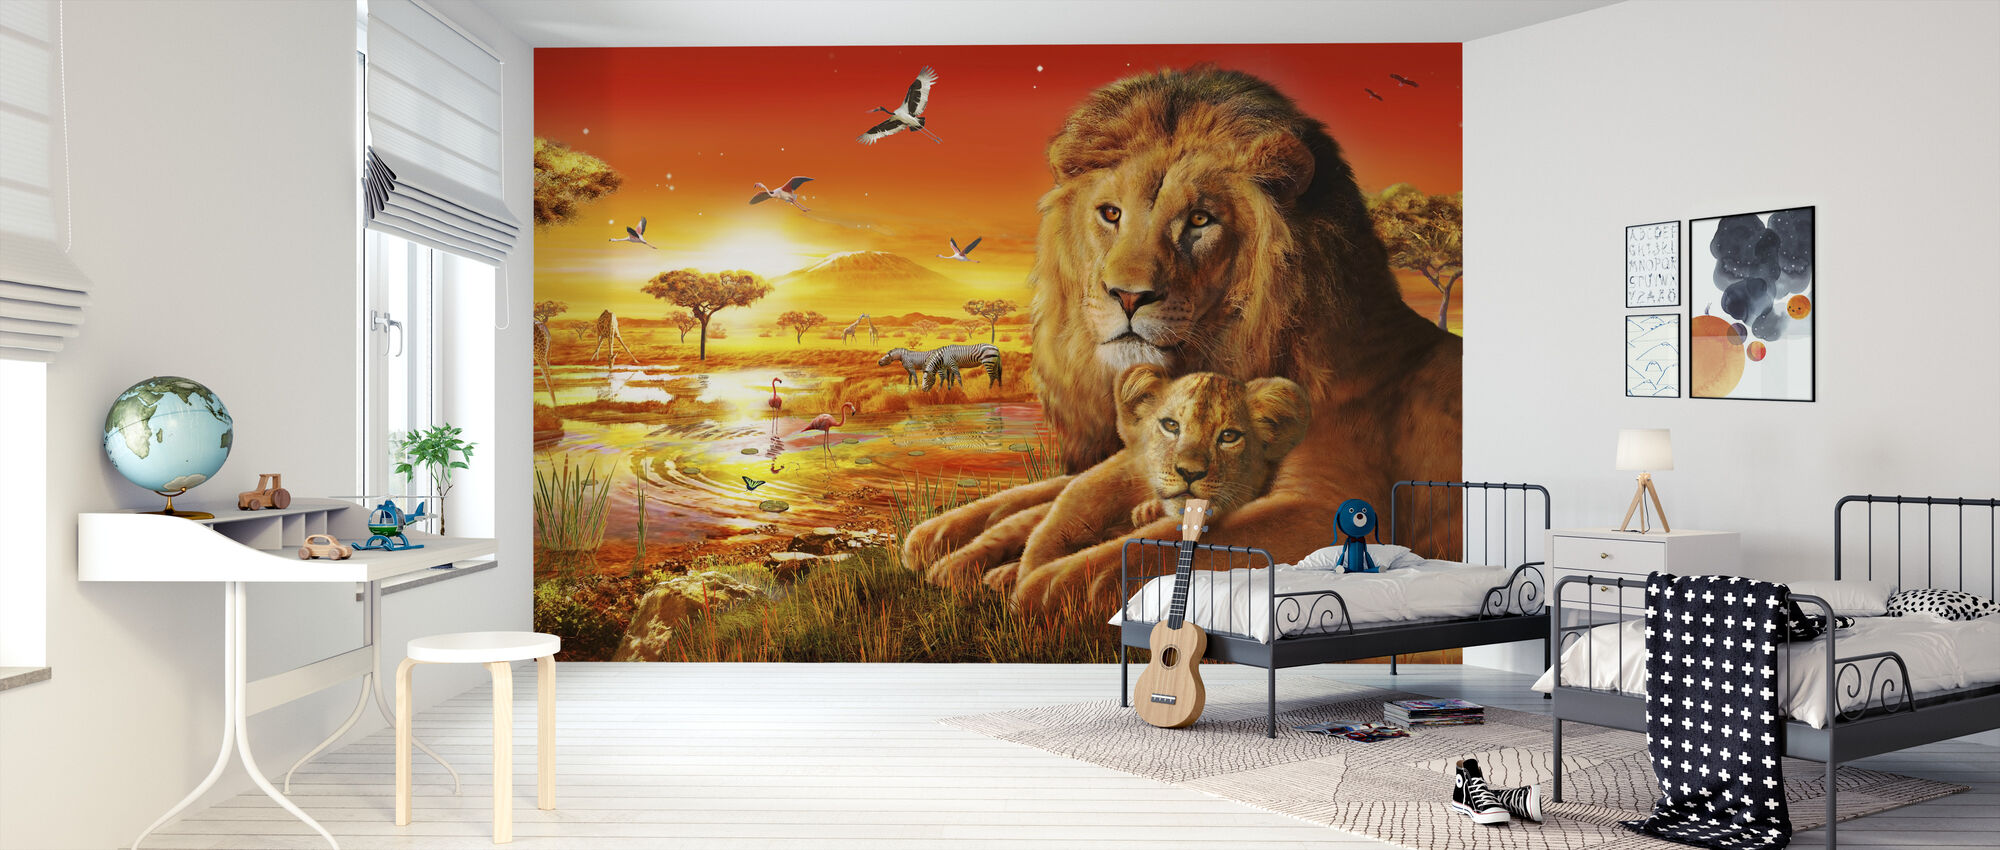 Savanna Sundown - Wallpaper - Kids Room